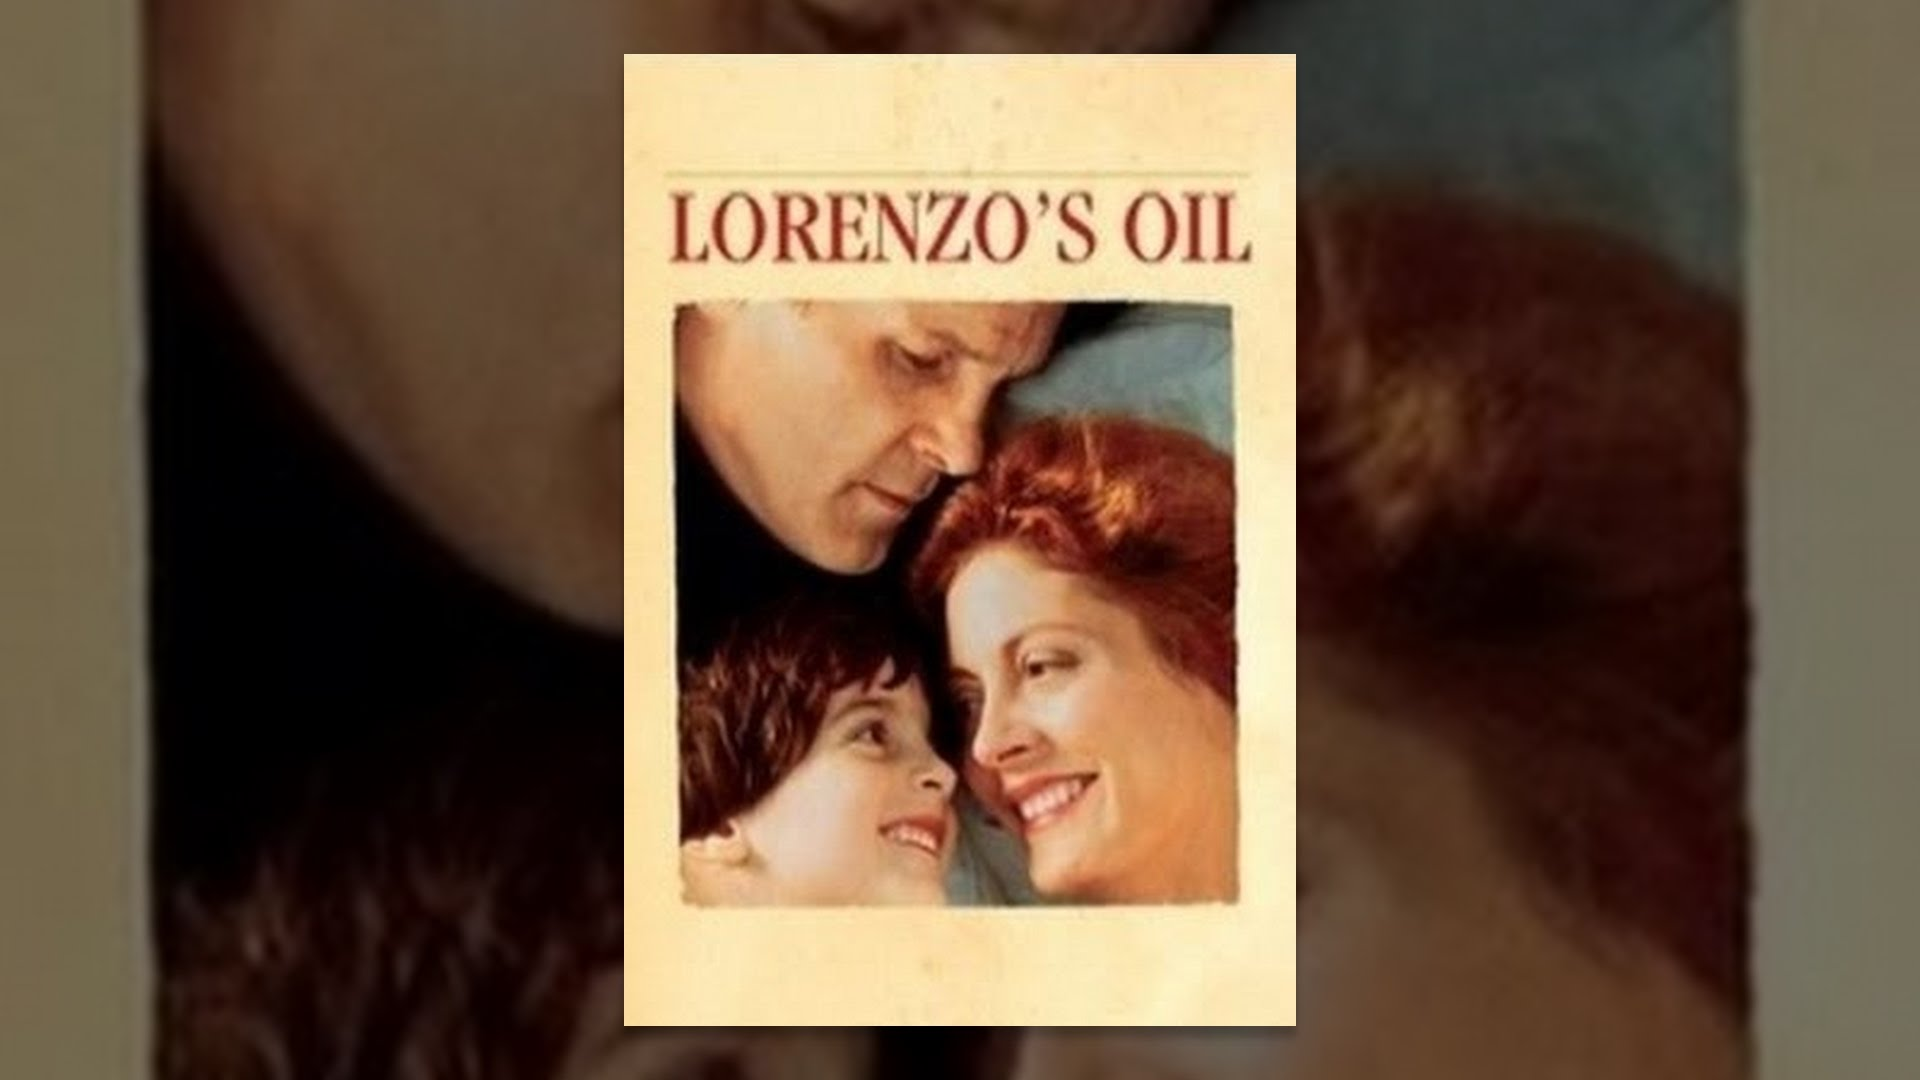 a movie analysis of lorenzos oil directed by george miller Ipod lorenzo's oil movie lorenzo's oil movie download actors: gerry bamman margo martindale kathleen wilhoite nick nolte peter ustinov lorenzo's oil - wikipedia, the free encyclopedia lorenzo's oil is a 1992 drama film directed by george miller.